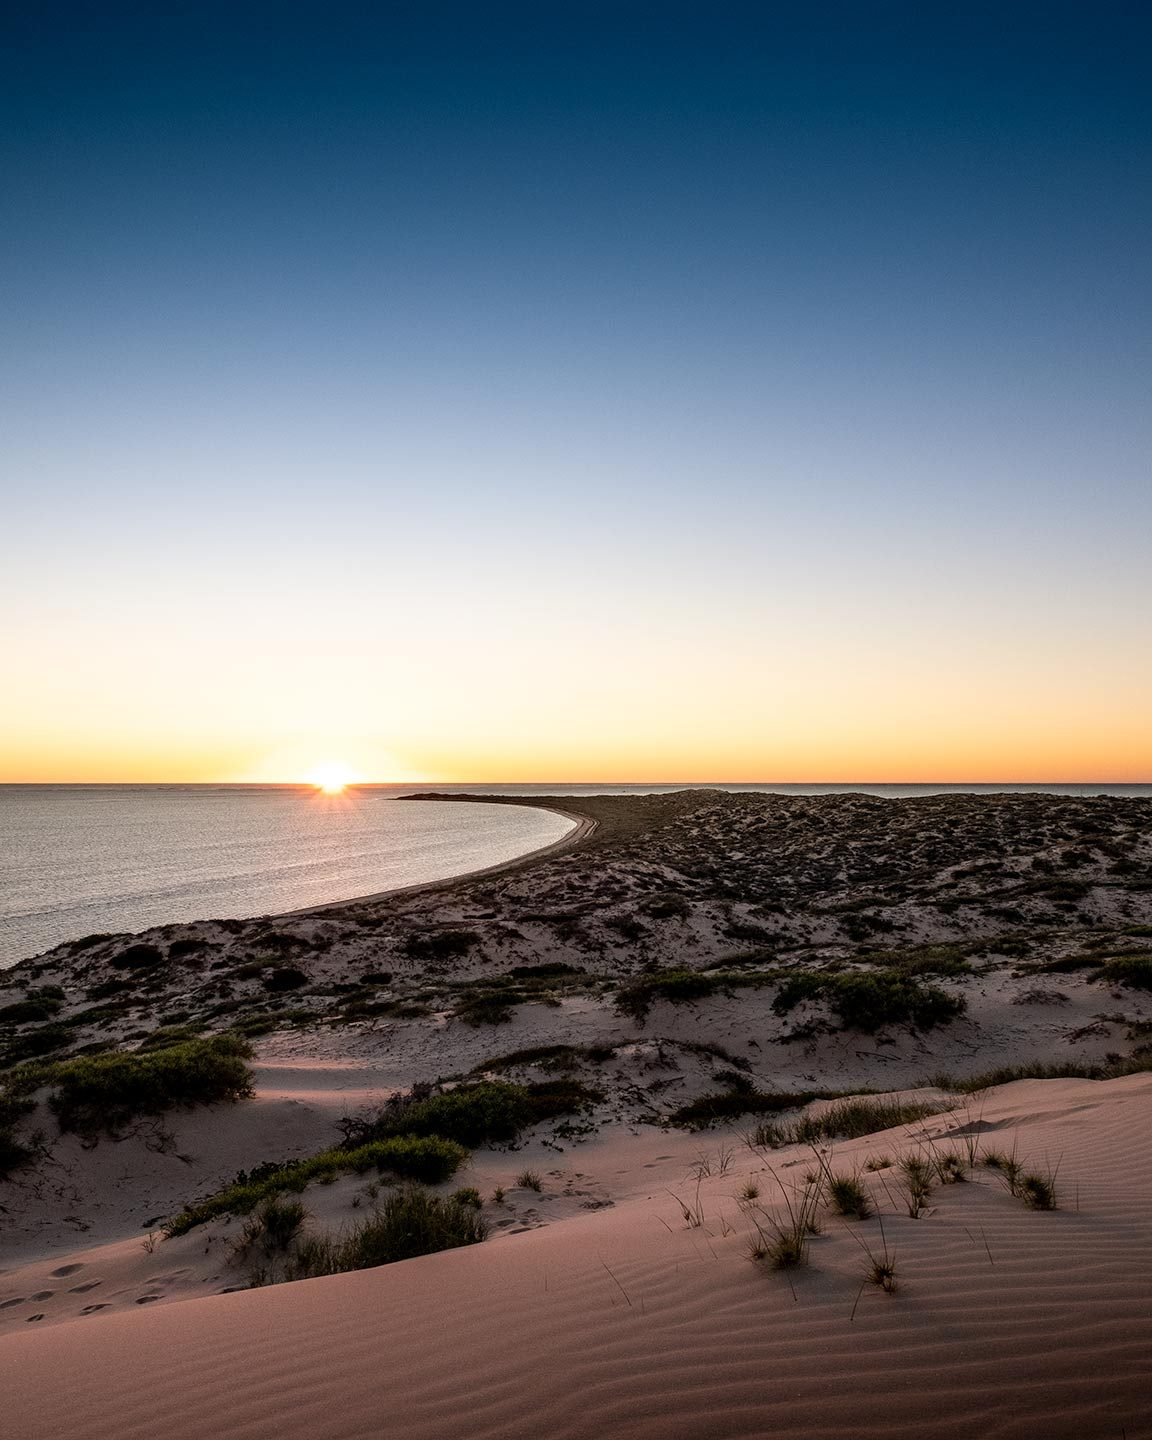 Looking out to sea with a coastline that curves round to the left as the perfect sunset light hits sandy dunes in the foreground.